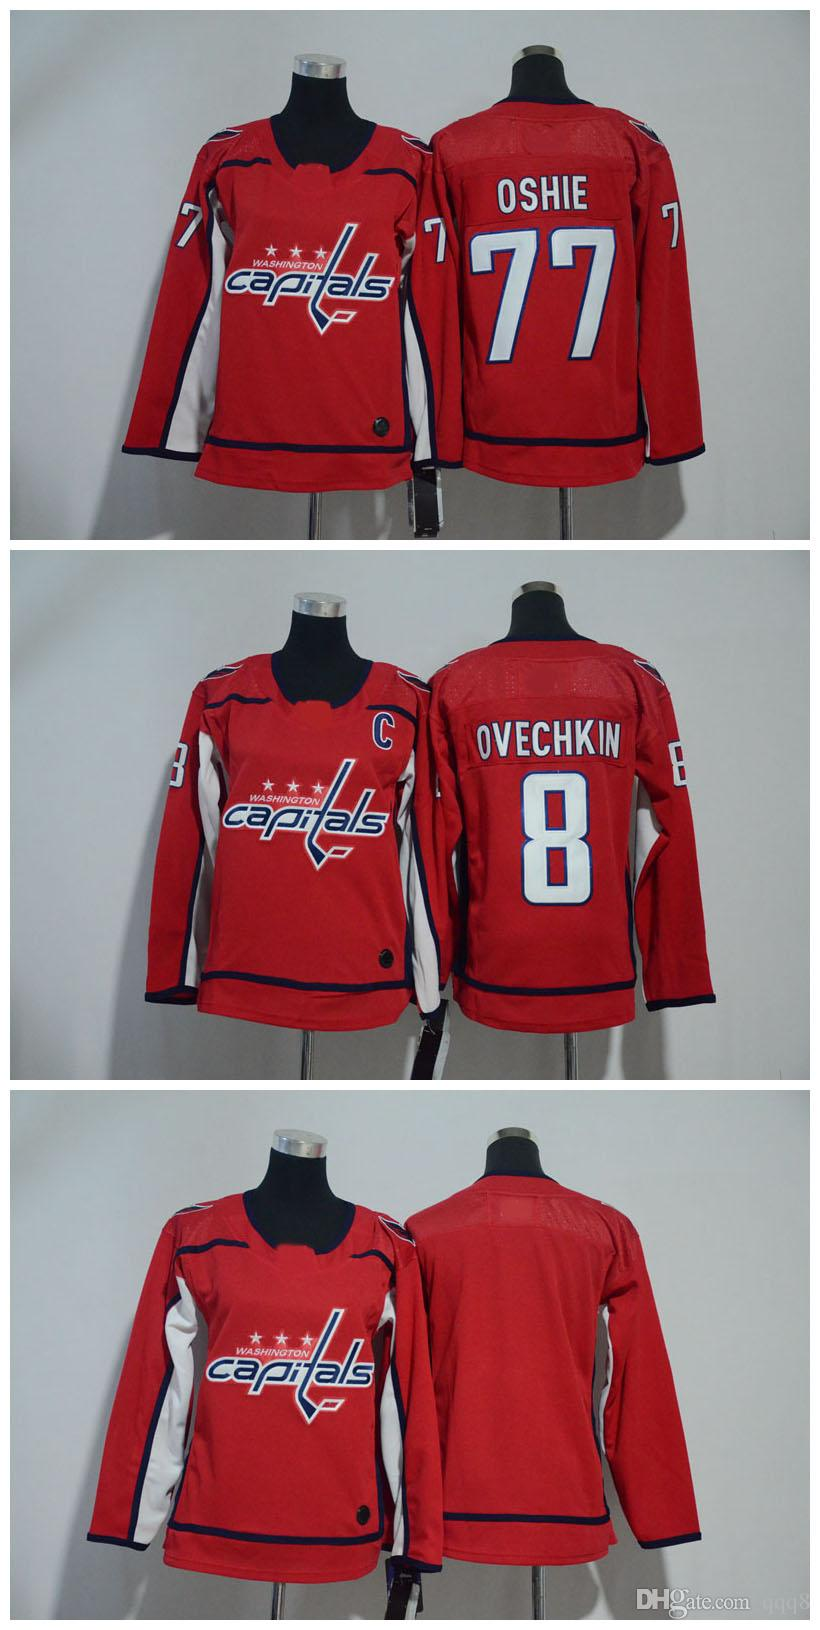 quality design ccd87 570e8 2017 2018 Ad Women Washington Capitals Jersey Cheap 8 Alex Ovechkin 77 Tj  Oshie Blank Red Stitched Ladies Hockey Jerseys From Qqq8, $24.83   ...